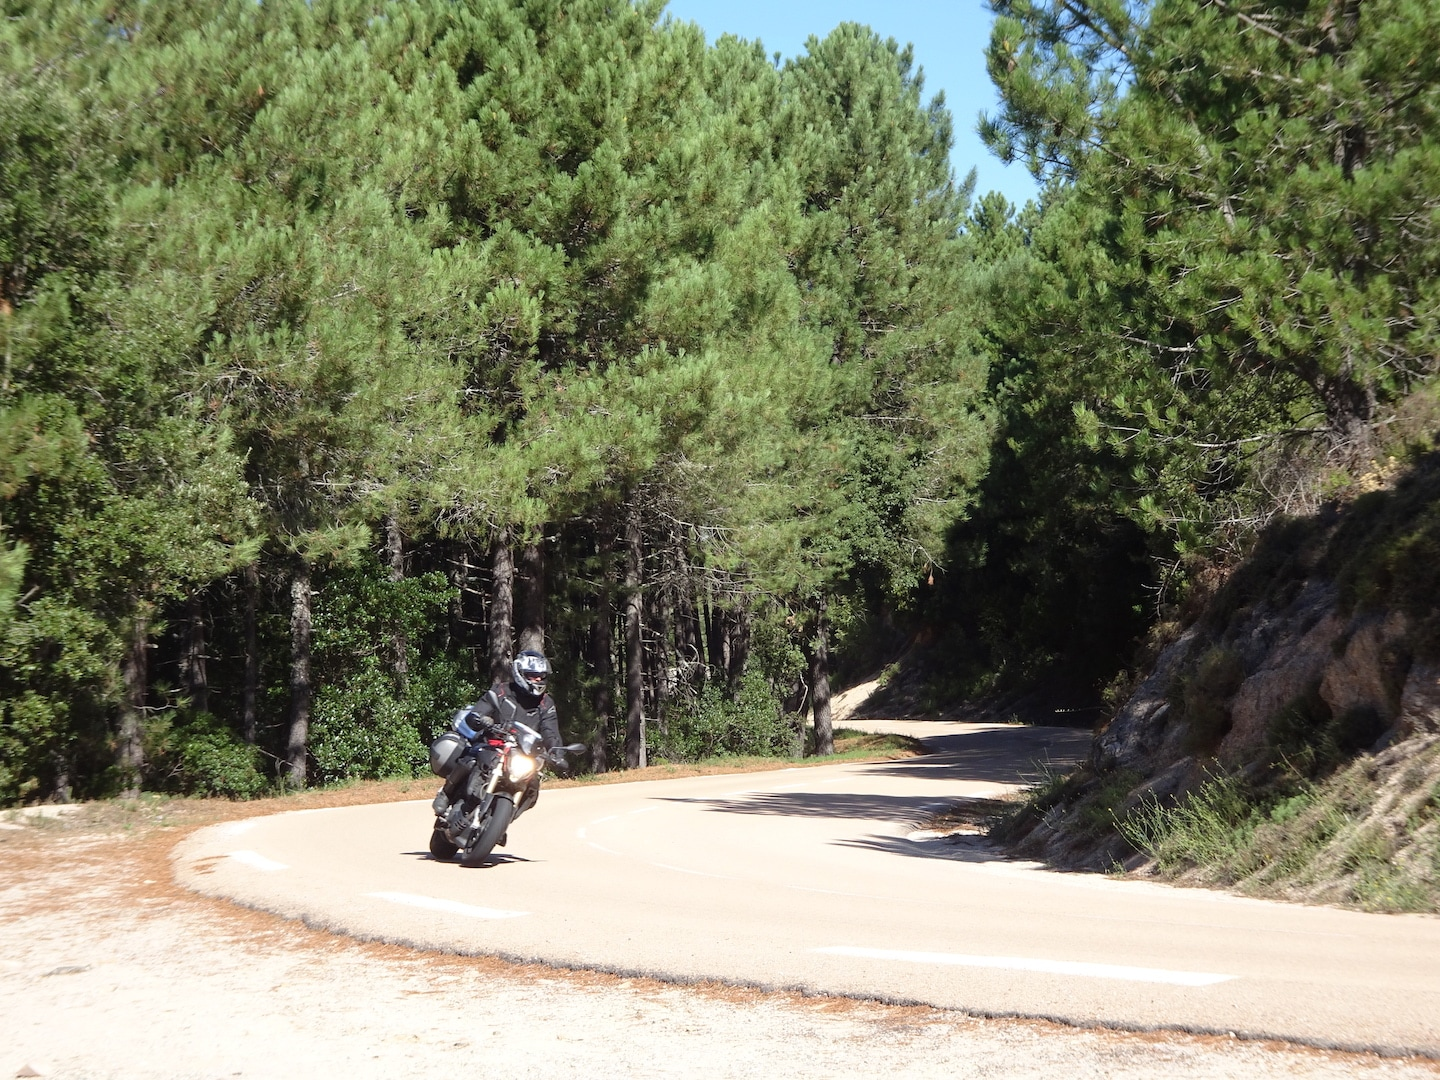 Riserblog andreas sommer motorcycle corsica 9